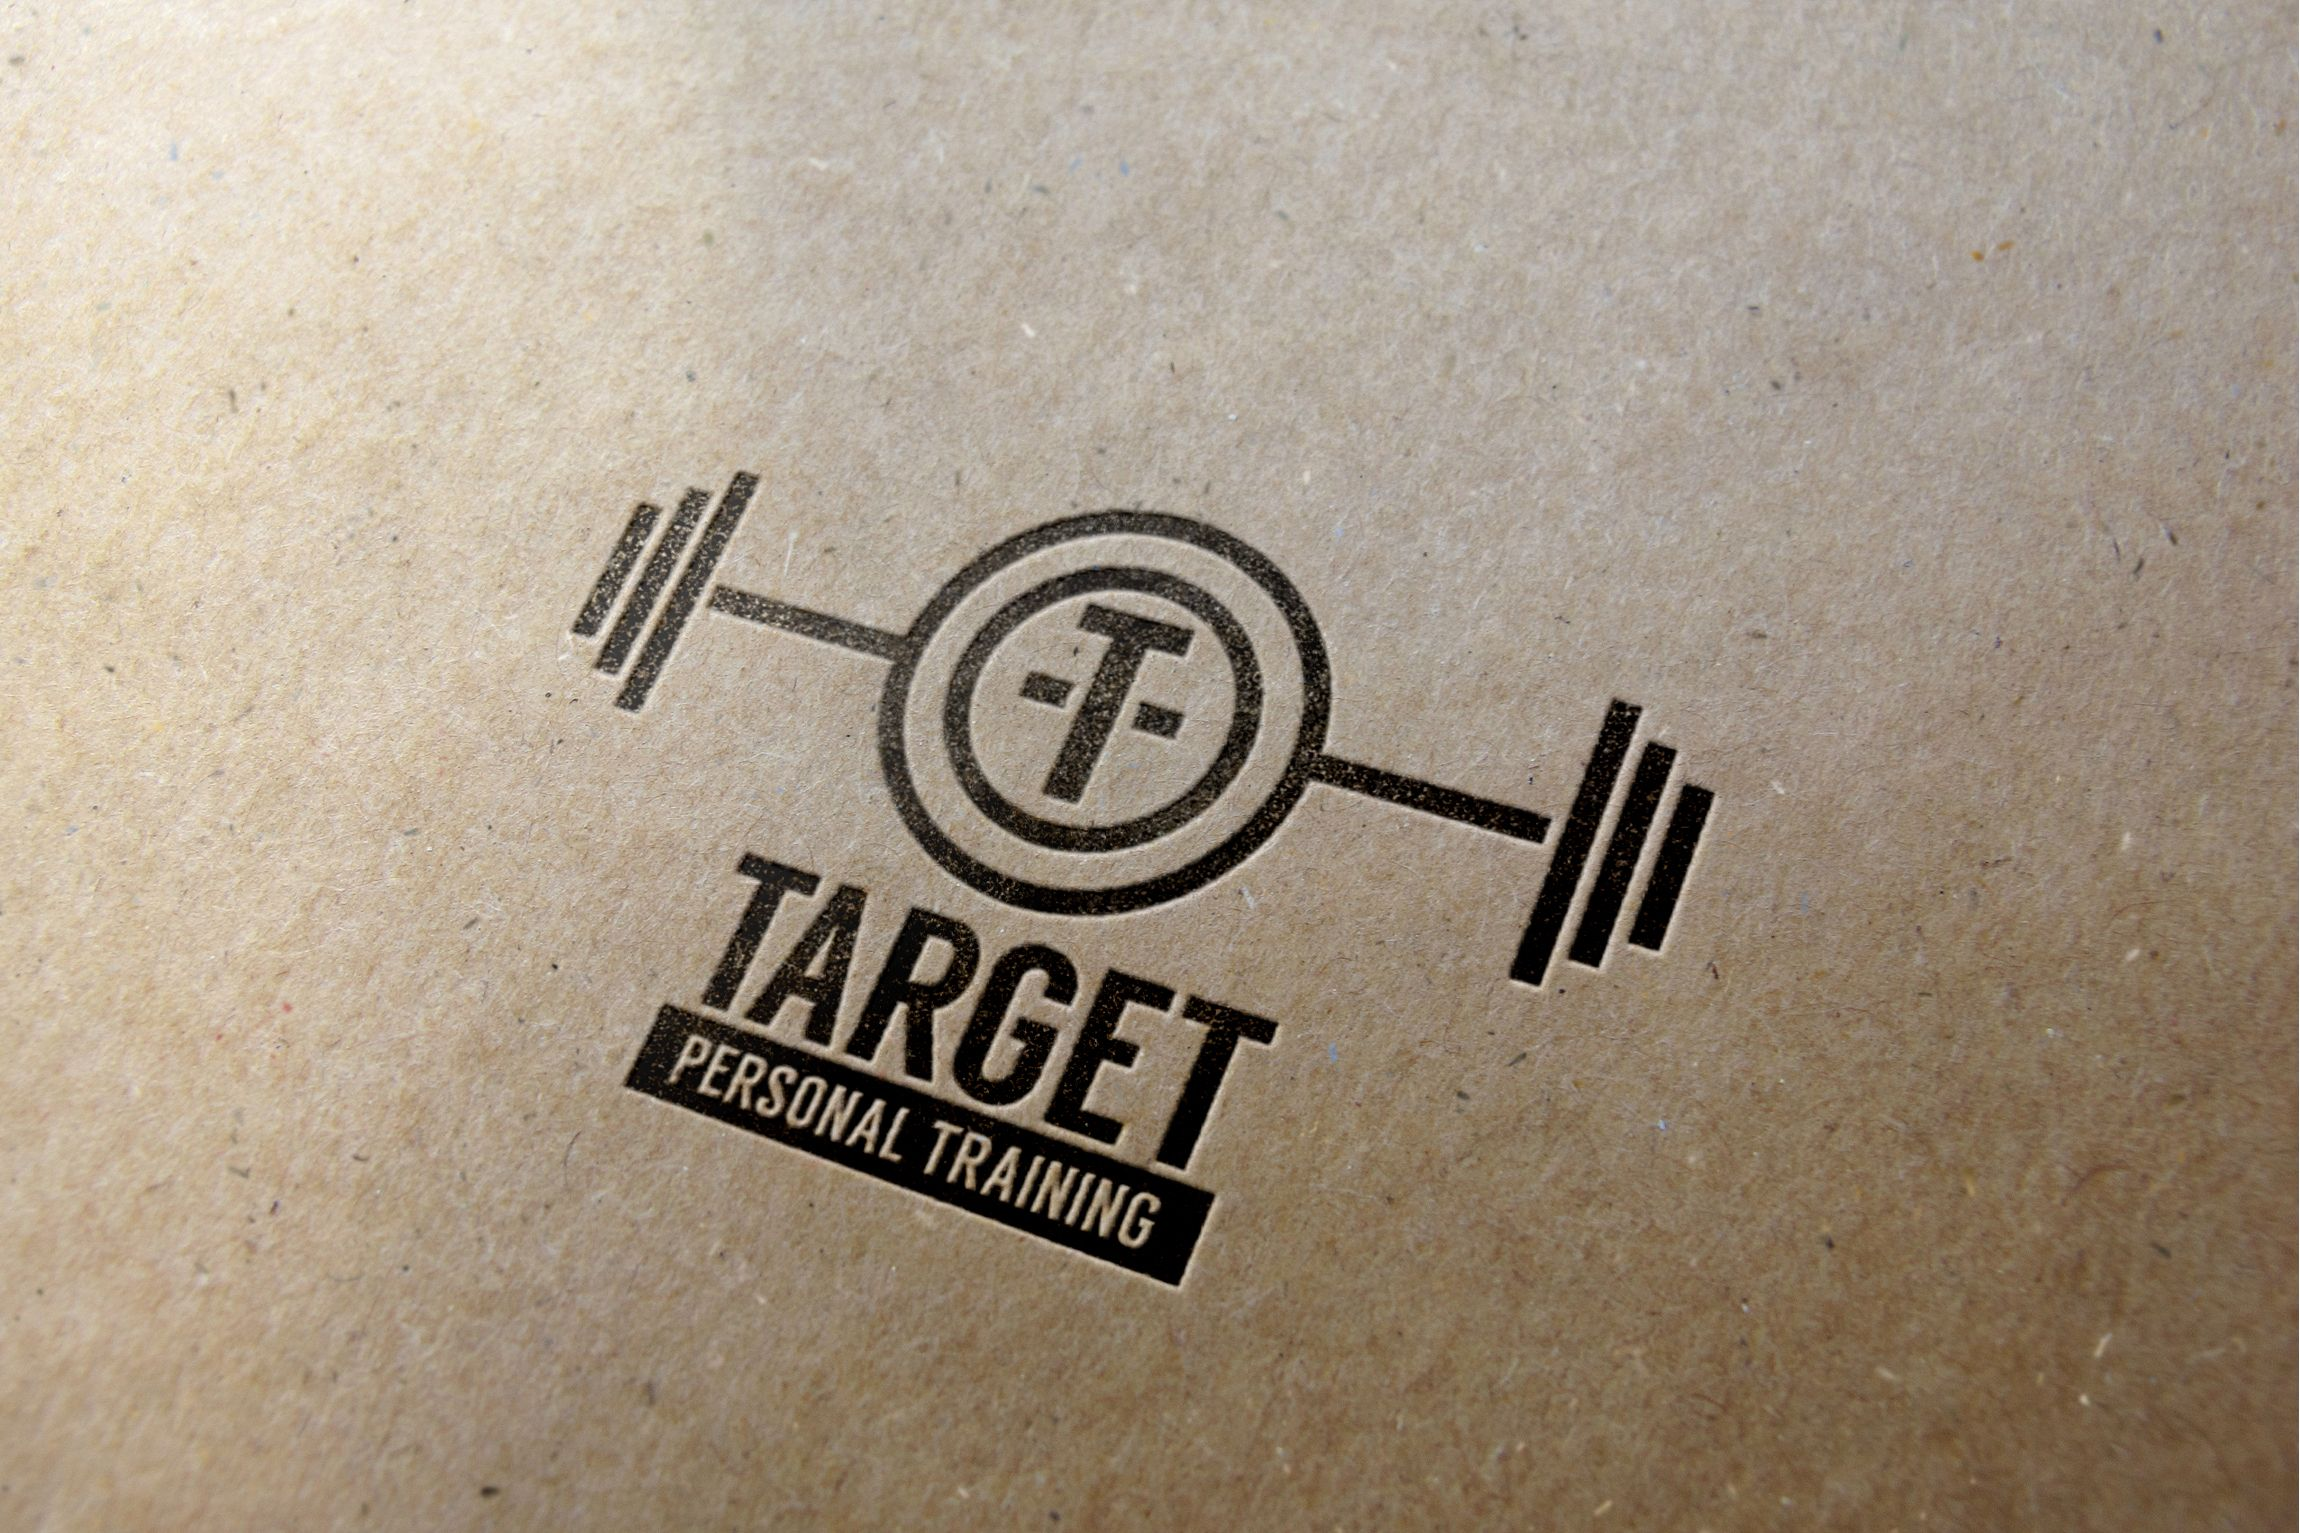 personal trainers logo.